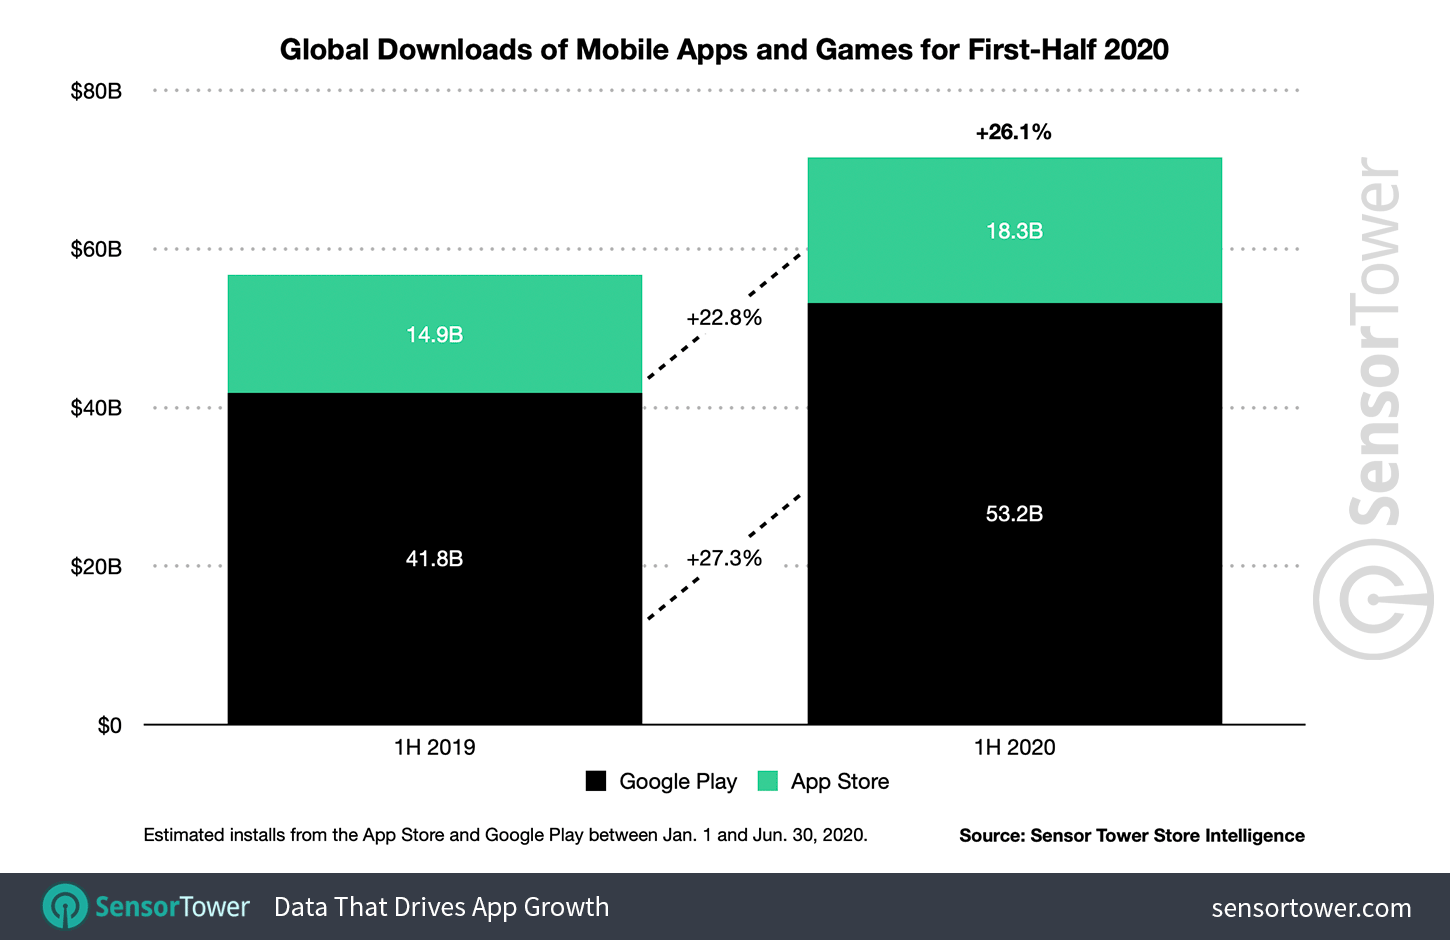 App downloads by app store, H1 2020, billions